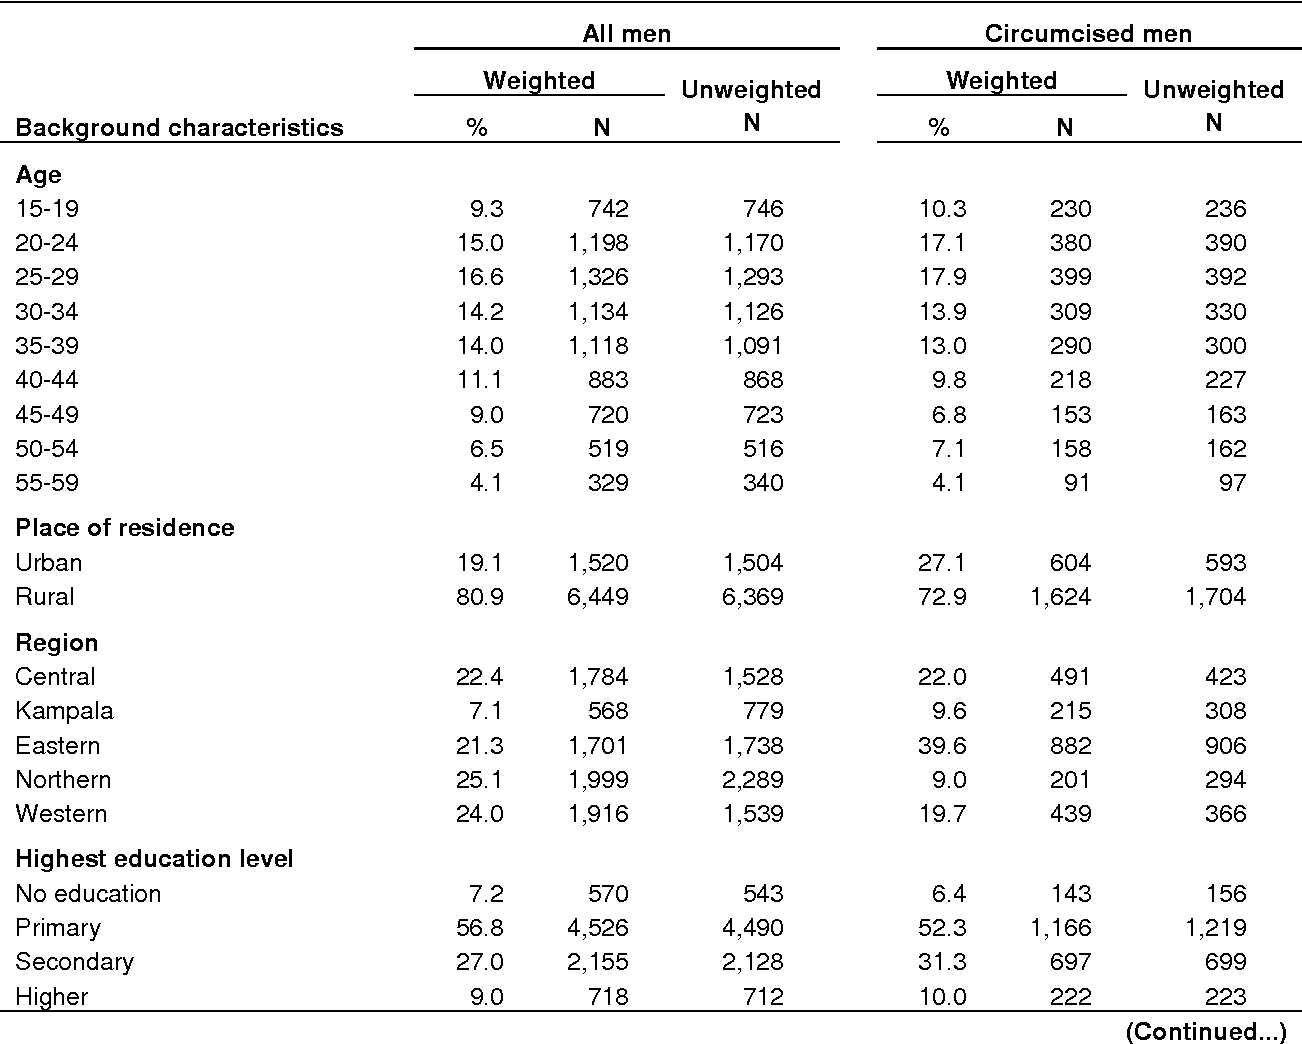 Table 1. Background characteristics of all men and circumcised men